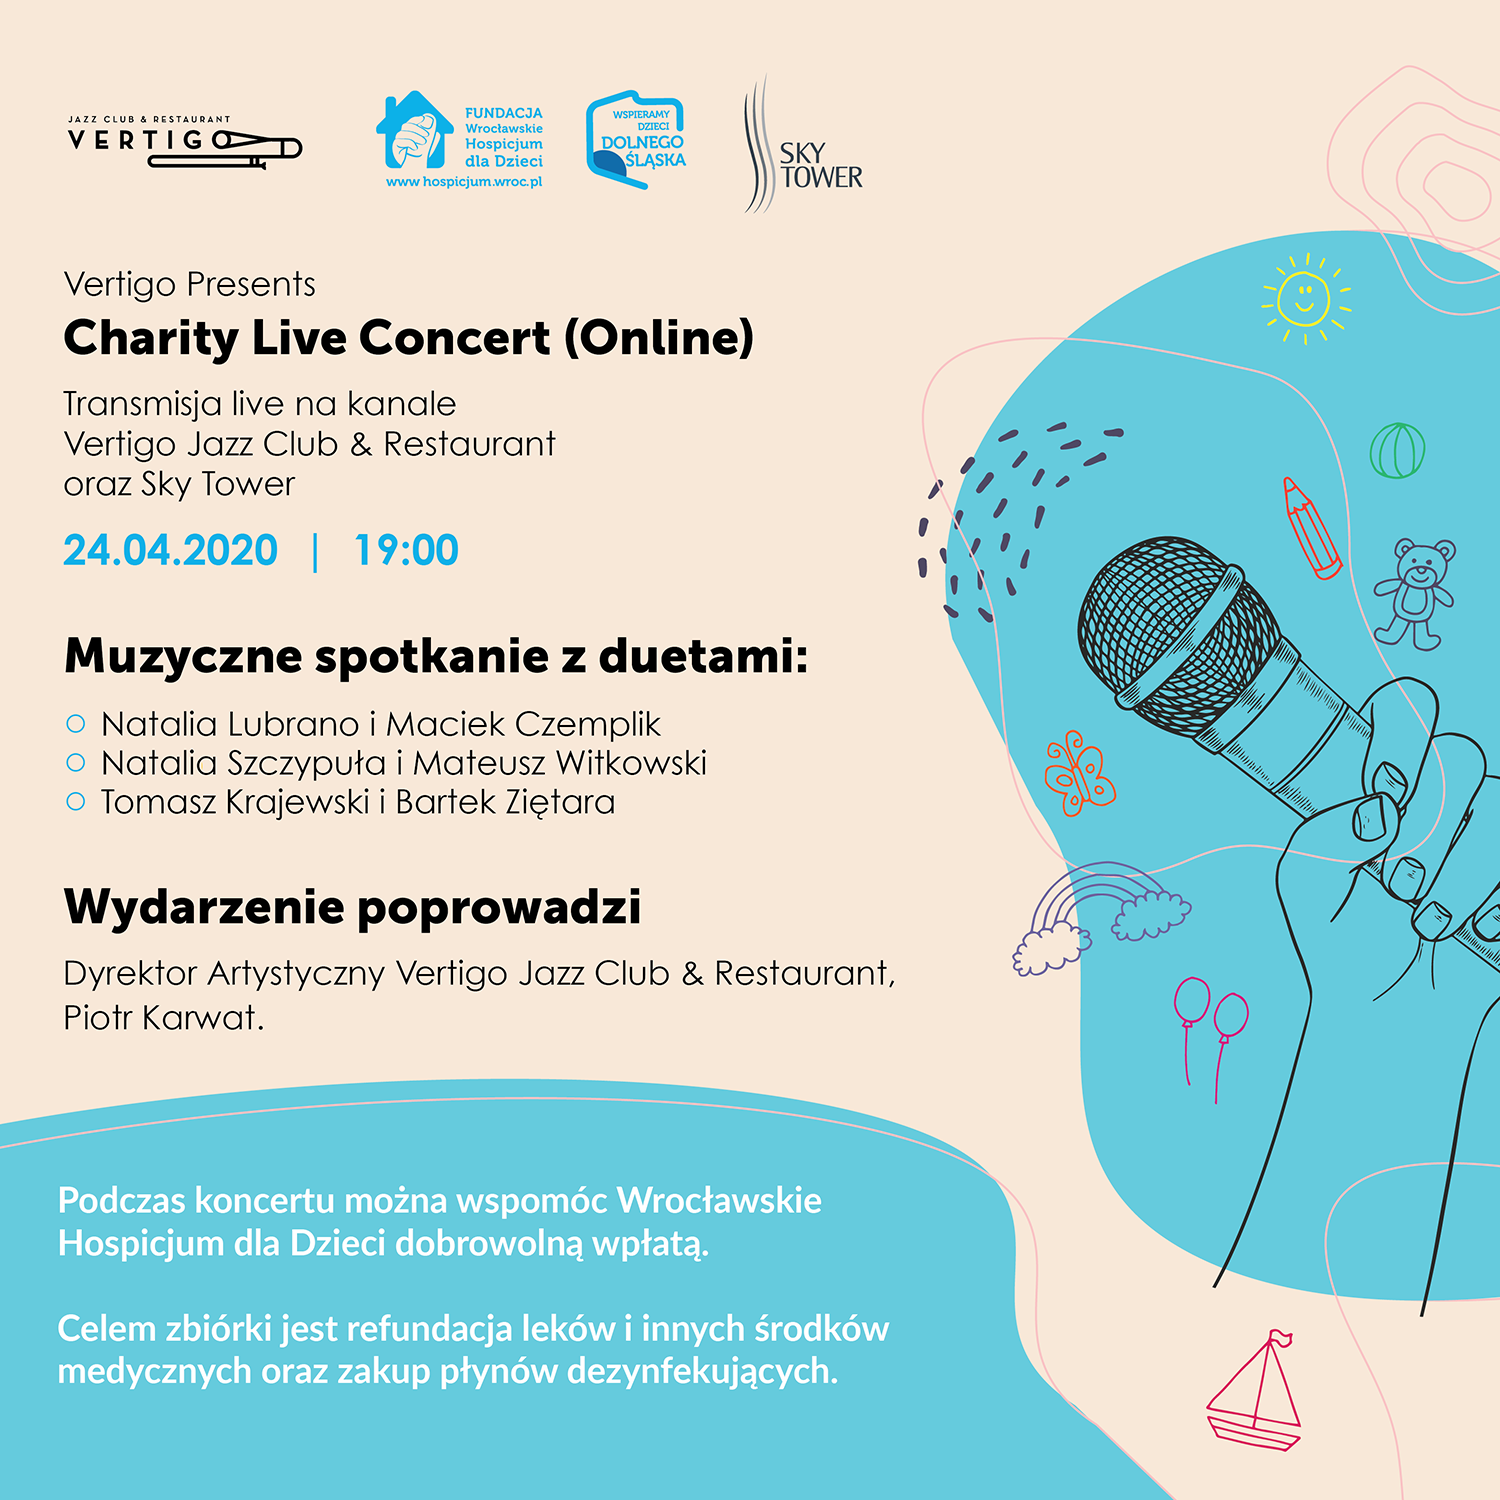 Vertigo Presents: Charity Live Concert